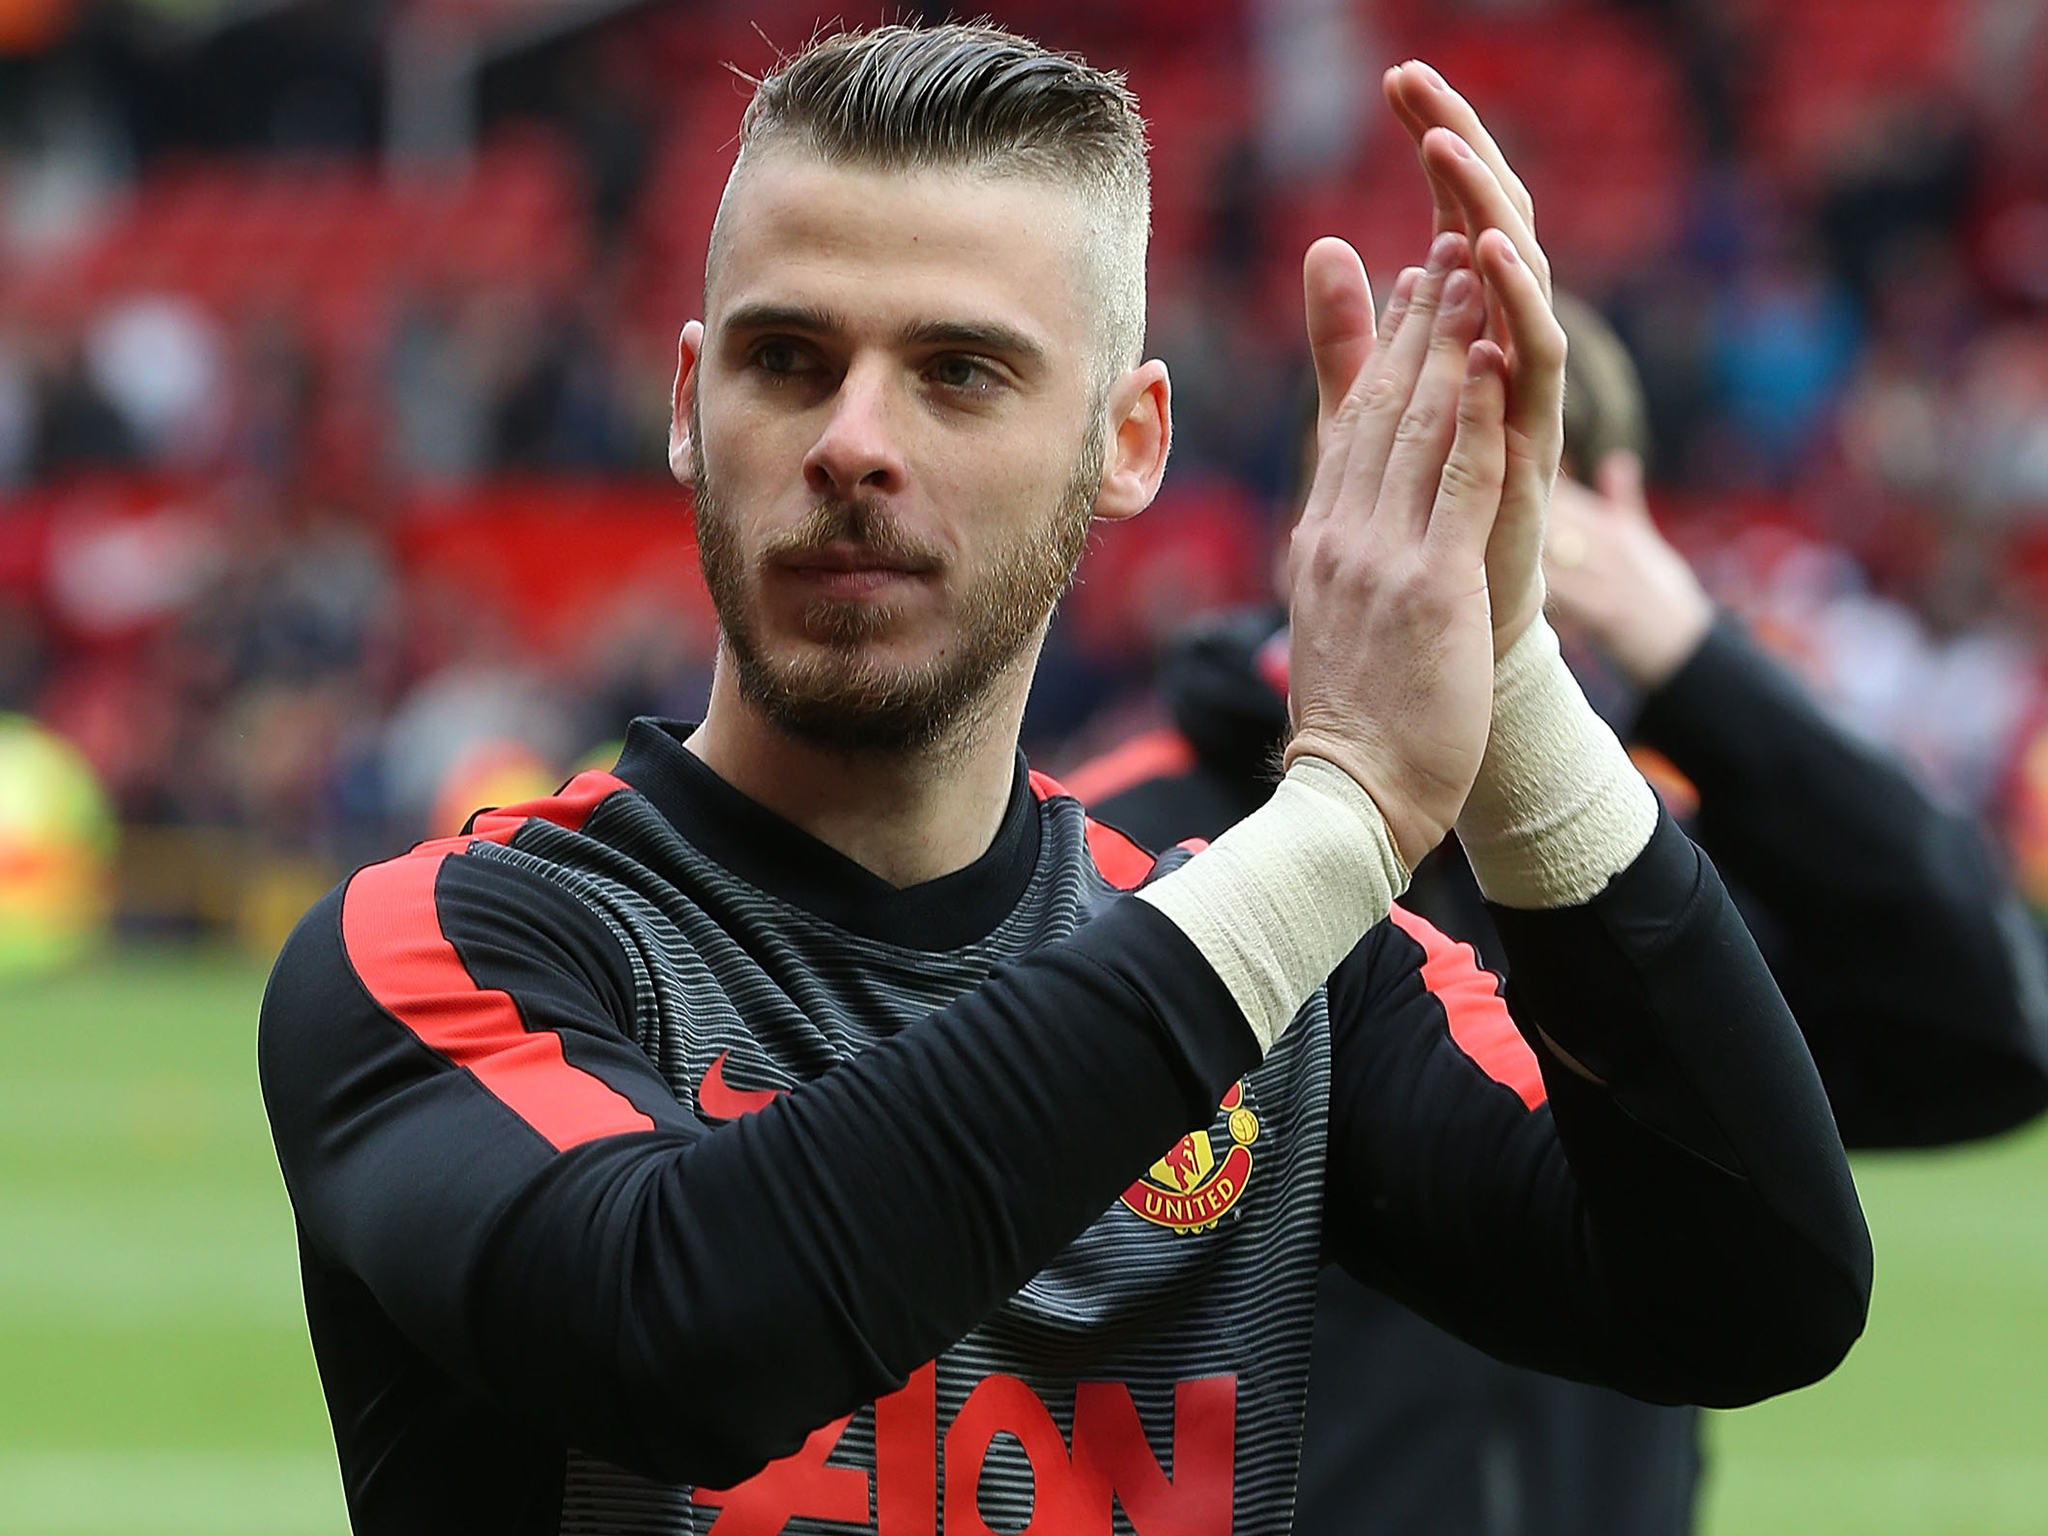 Spain Soccer David De Gea Clapping Mobile Free Hd Download Pictures